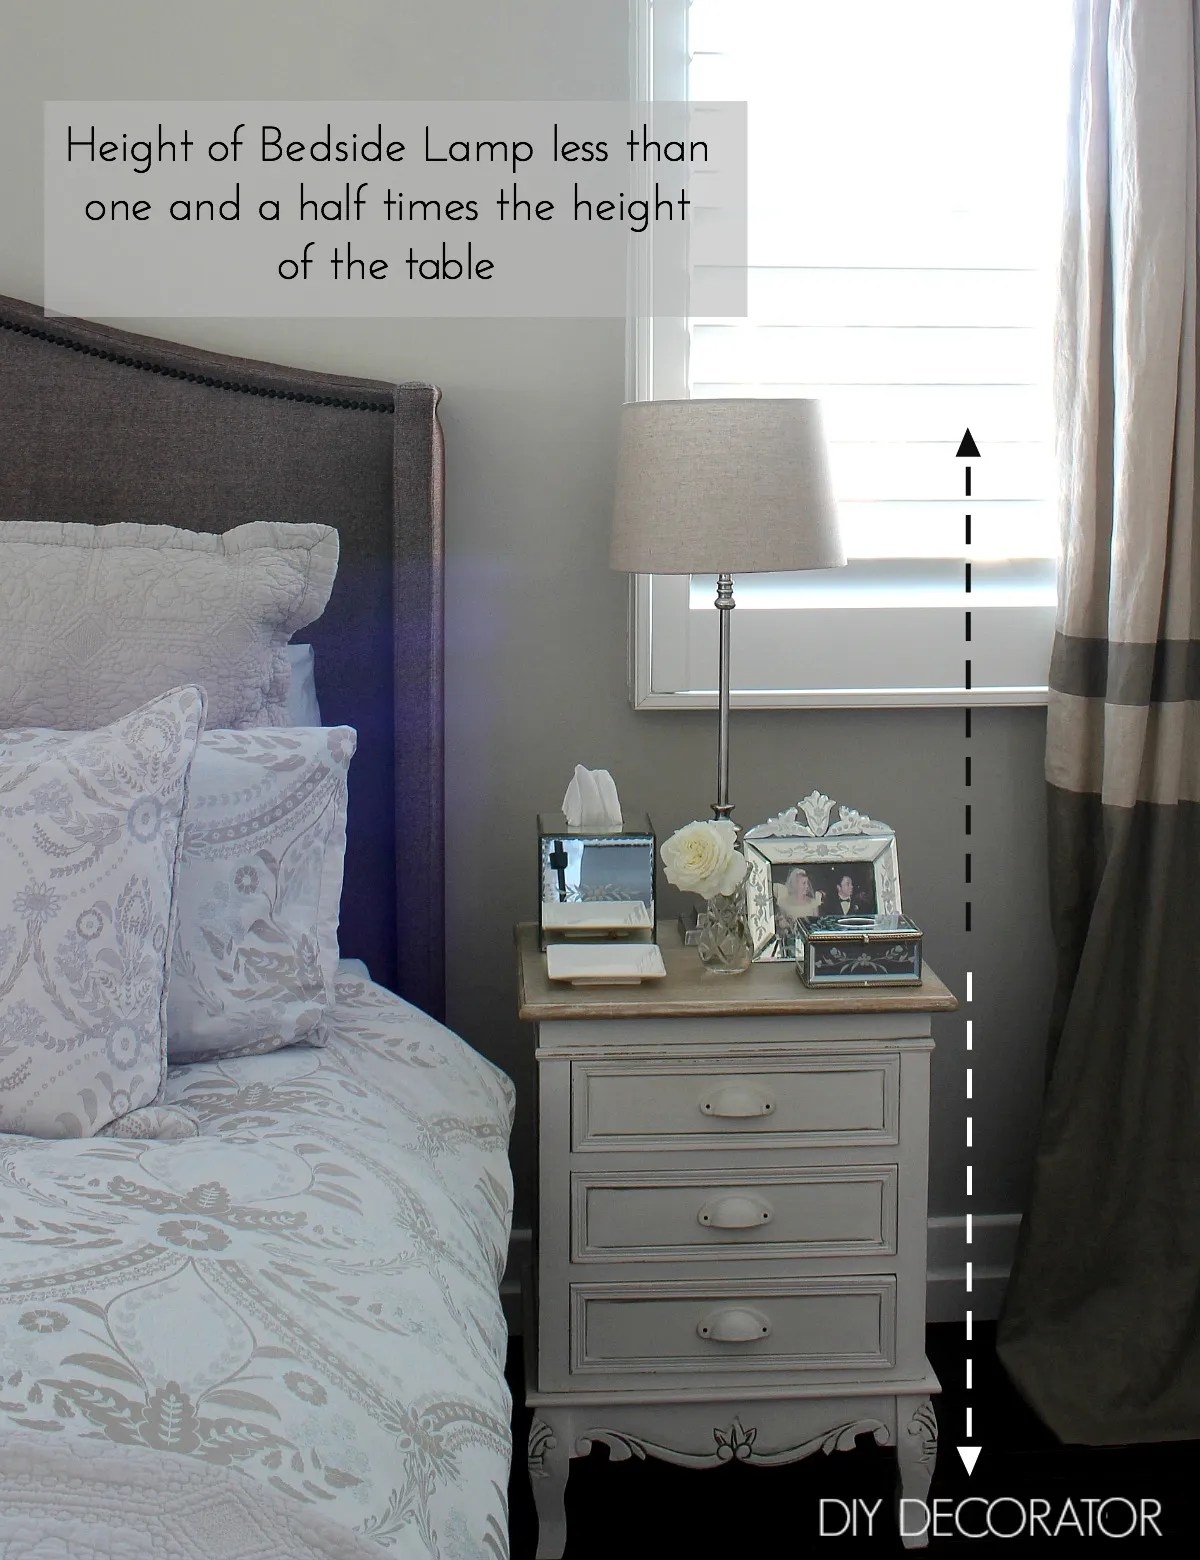 Tall Bedside Lamps What Is The Right Bedside Lamp Height Diy Decorator